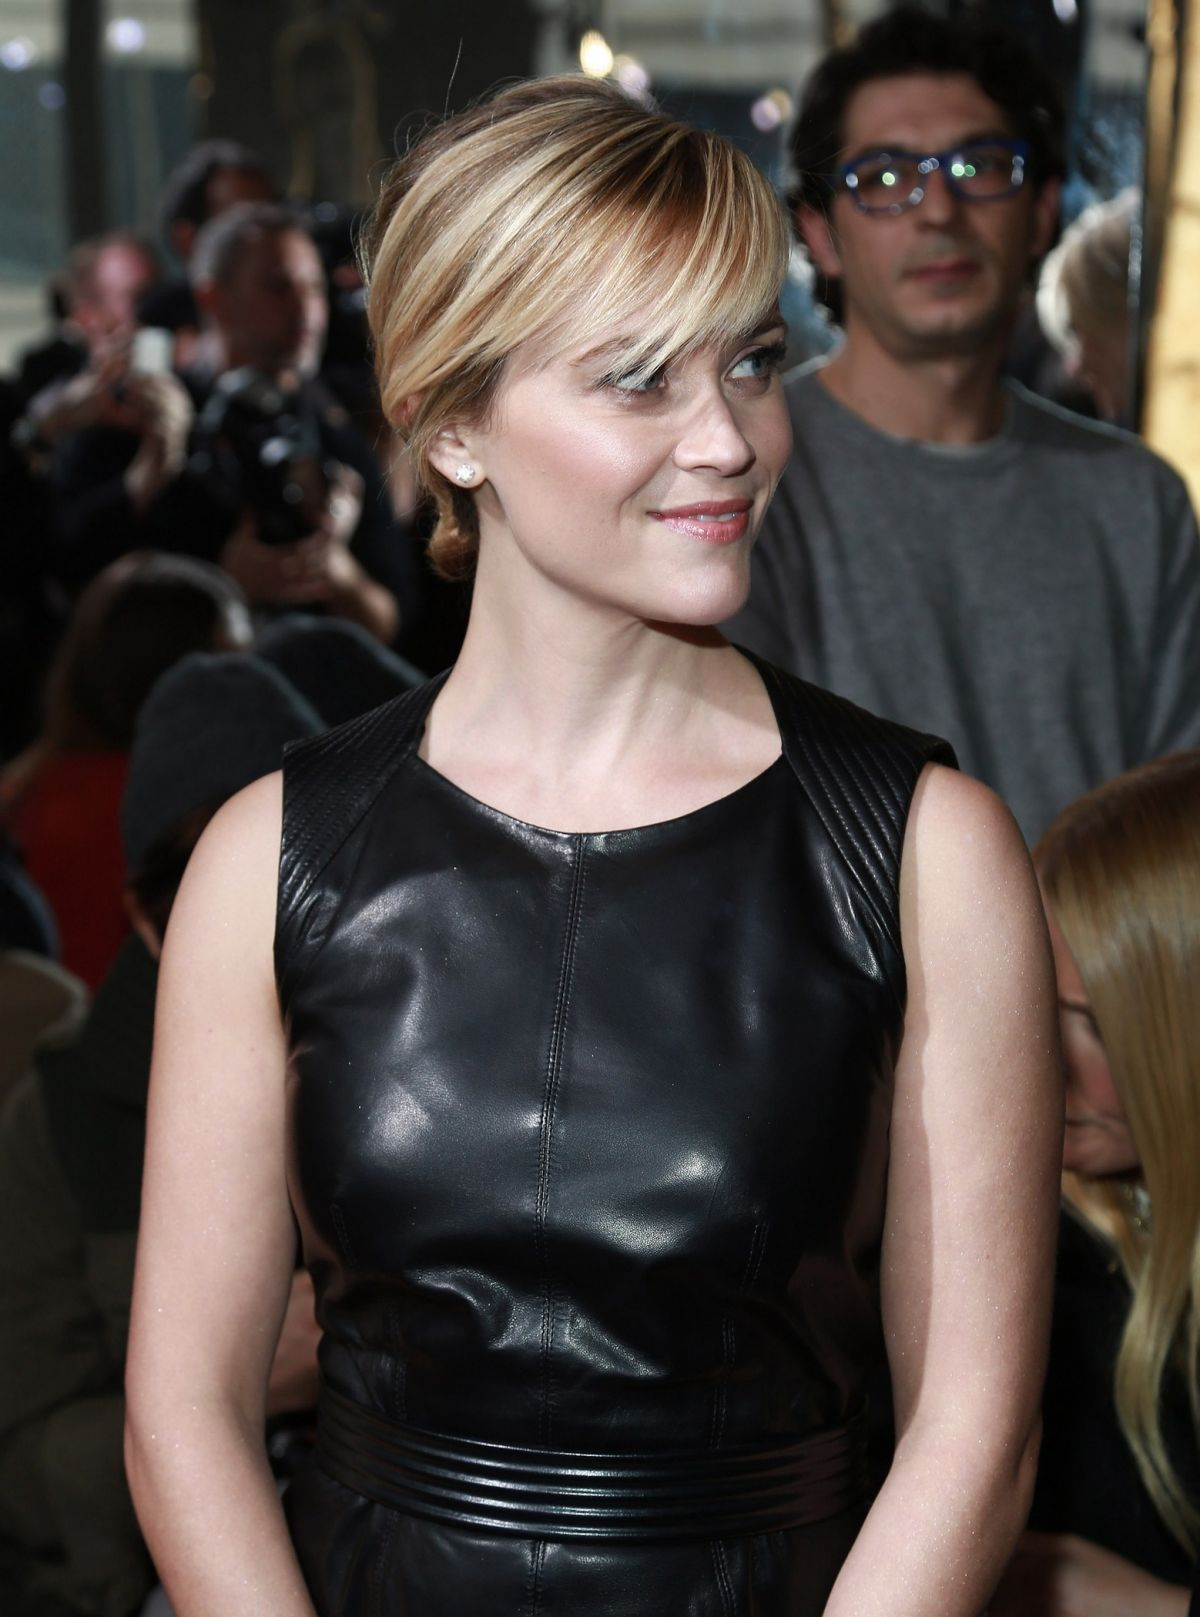 Santa Monica Mercedes >> Reese Witherspoon In A Leather Dress At Mercedes Benz Fashion Week - Celebzz